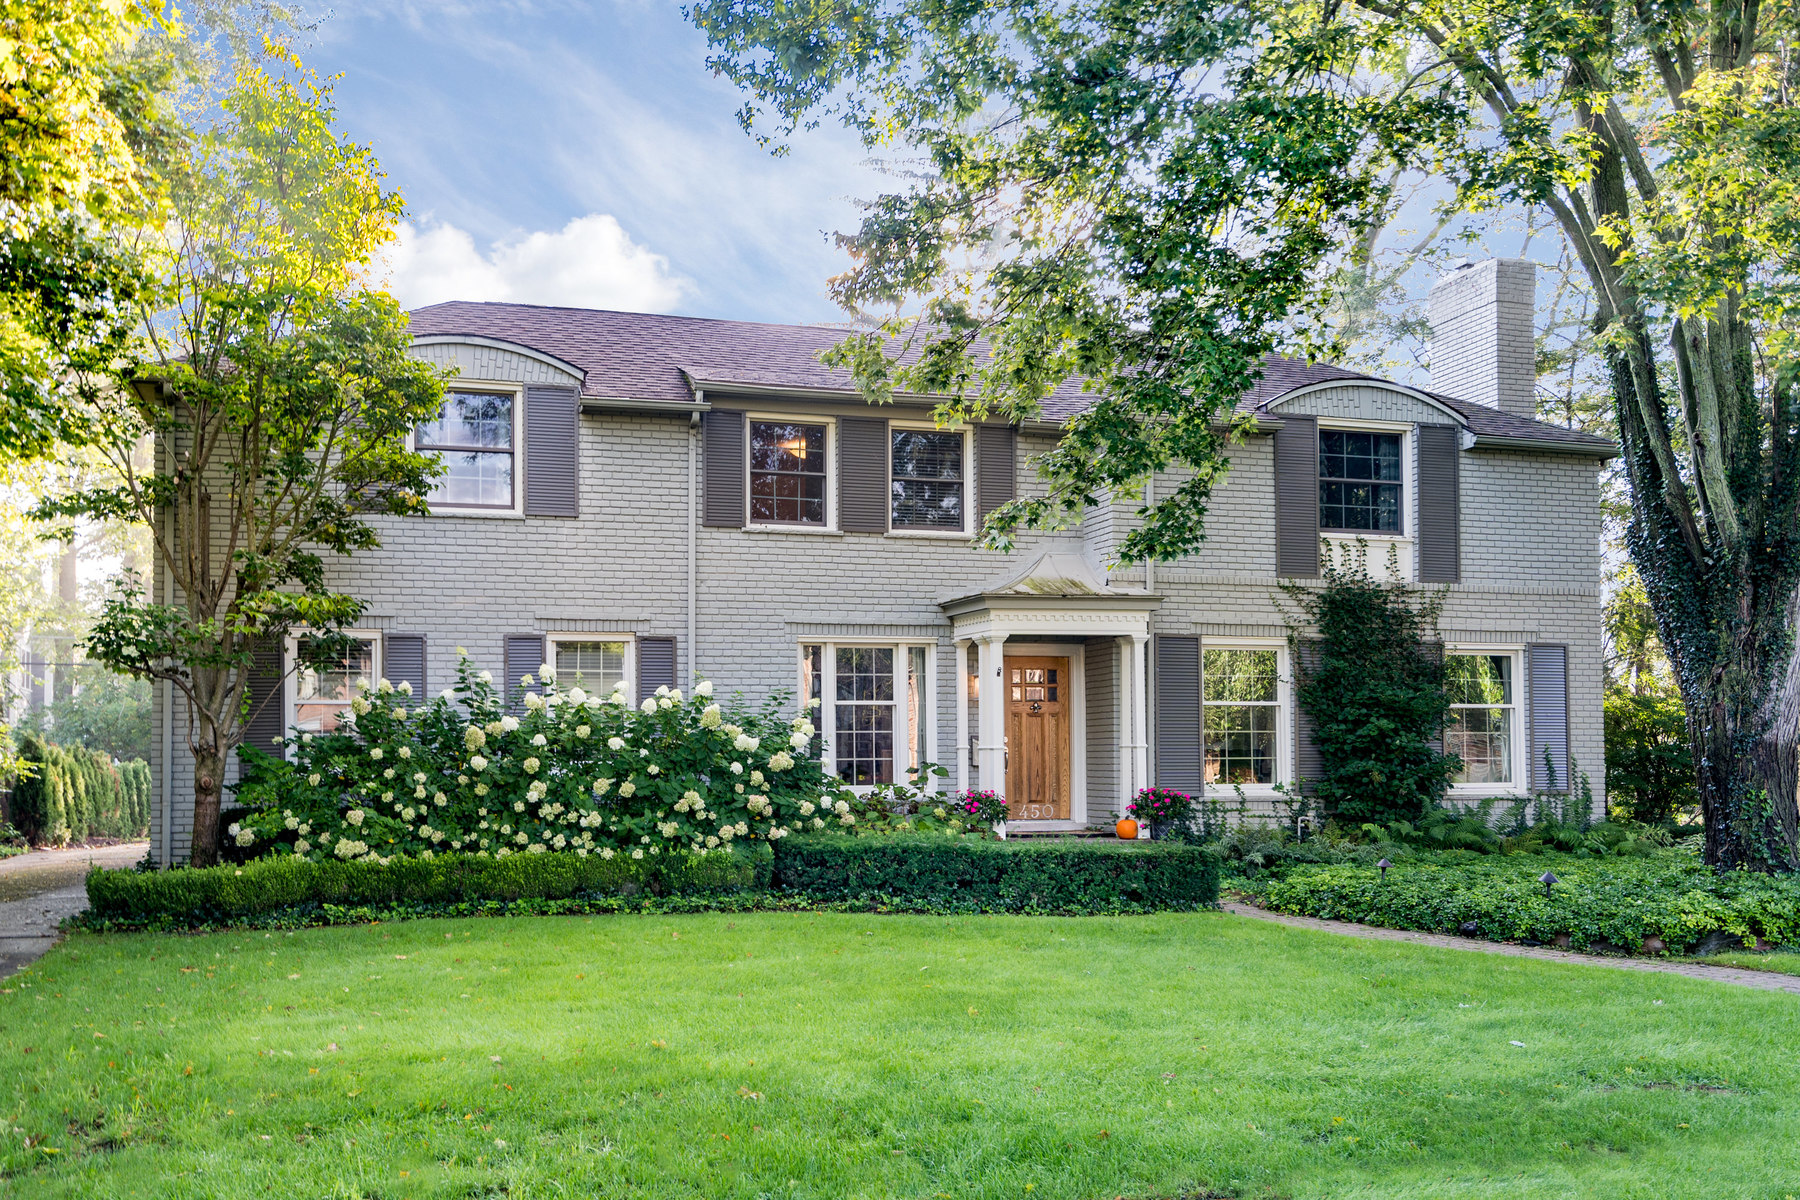 Single Family Homes for Sale at Bloomfield Township 450 Westwood Drive Bloomfield Township, Michigan 48301 United States